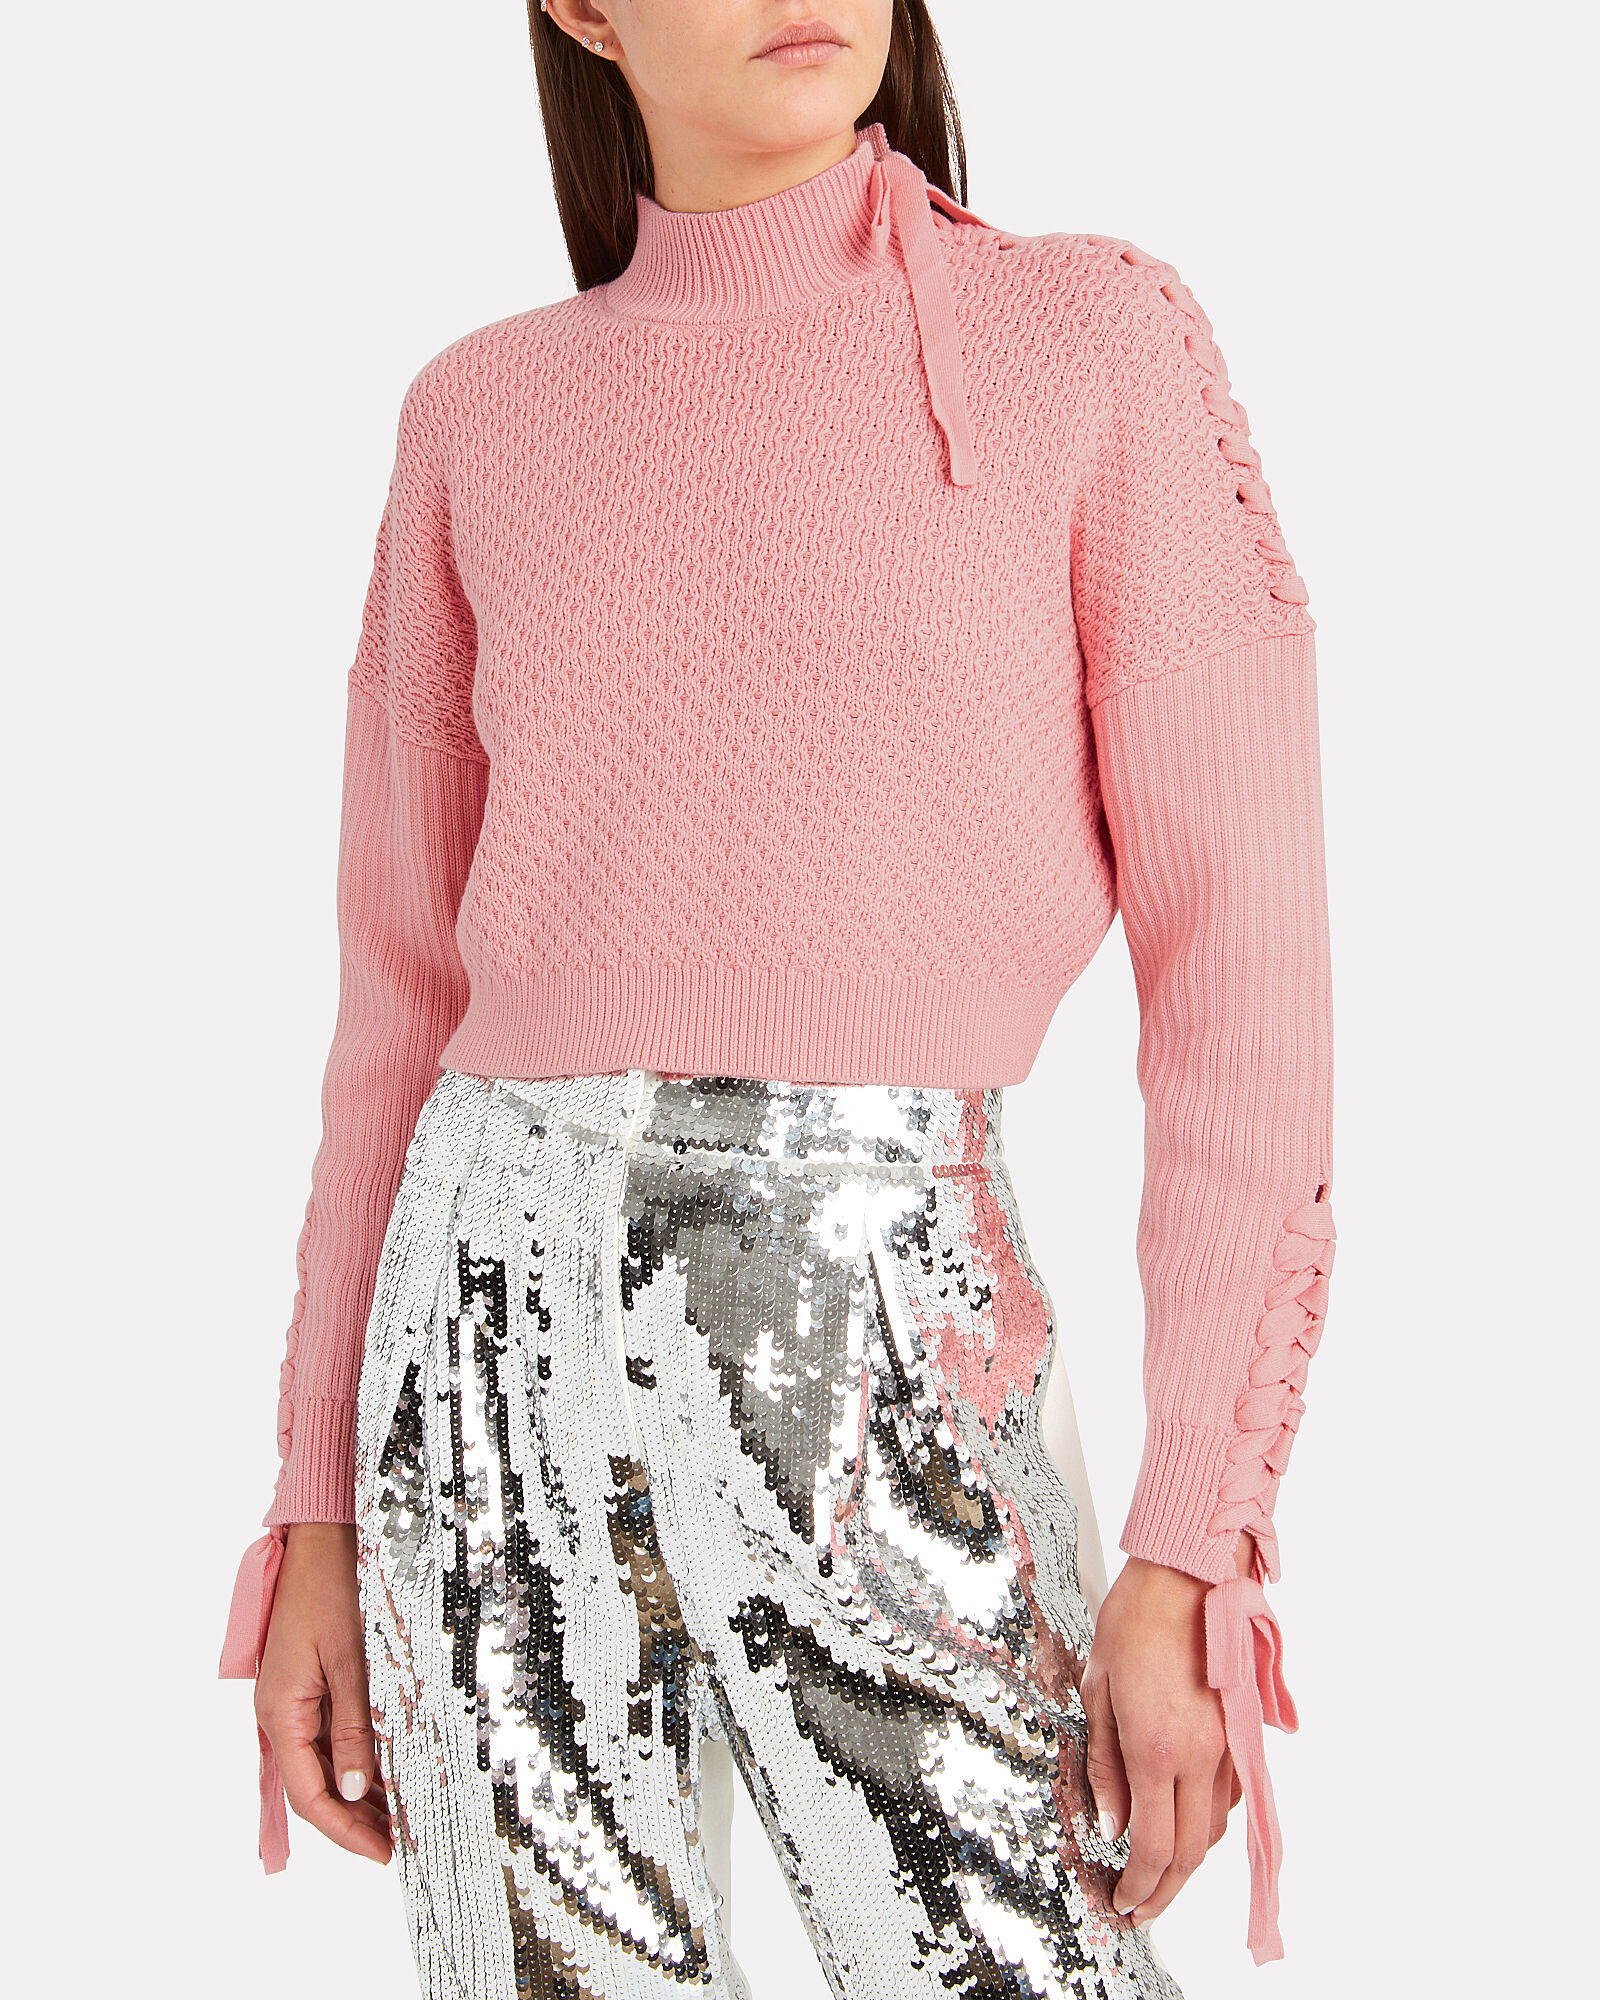 Lace-Up Honeycomb Knit Sweater, PINK, hi-res